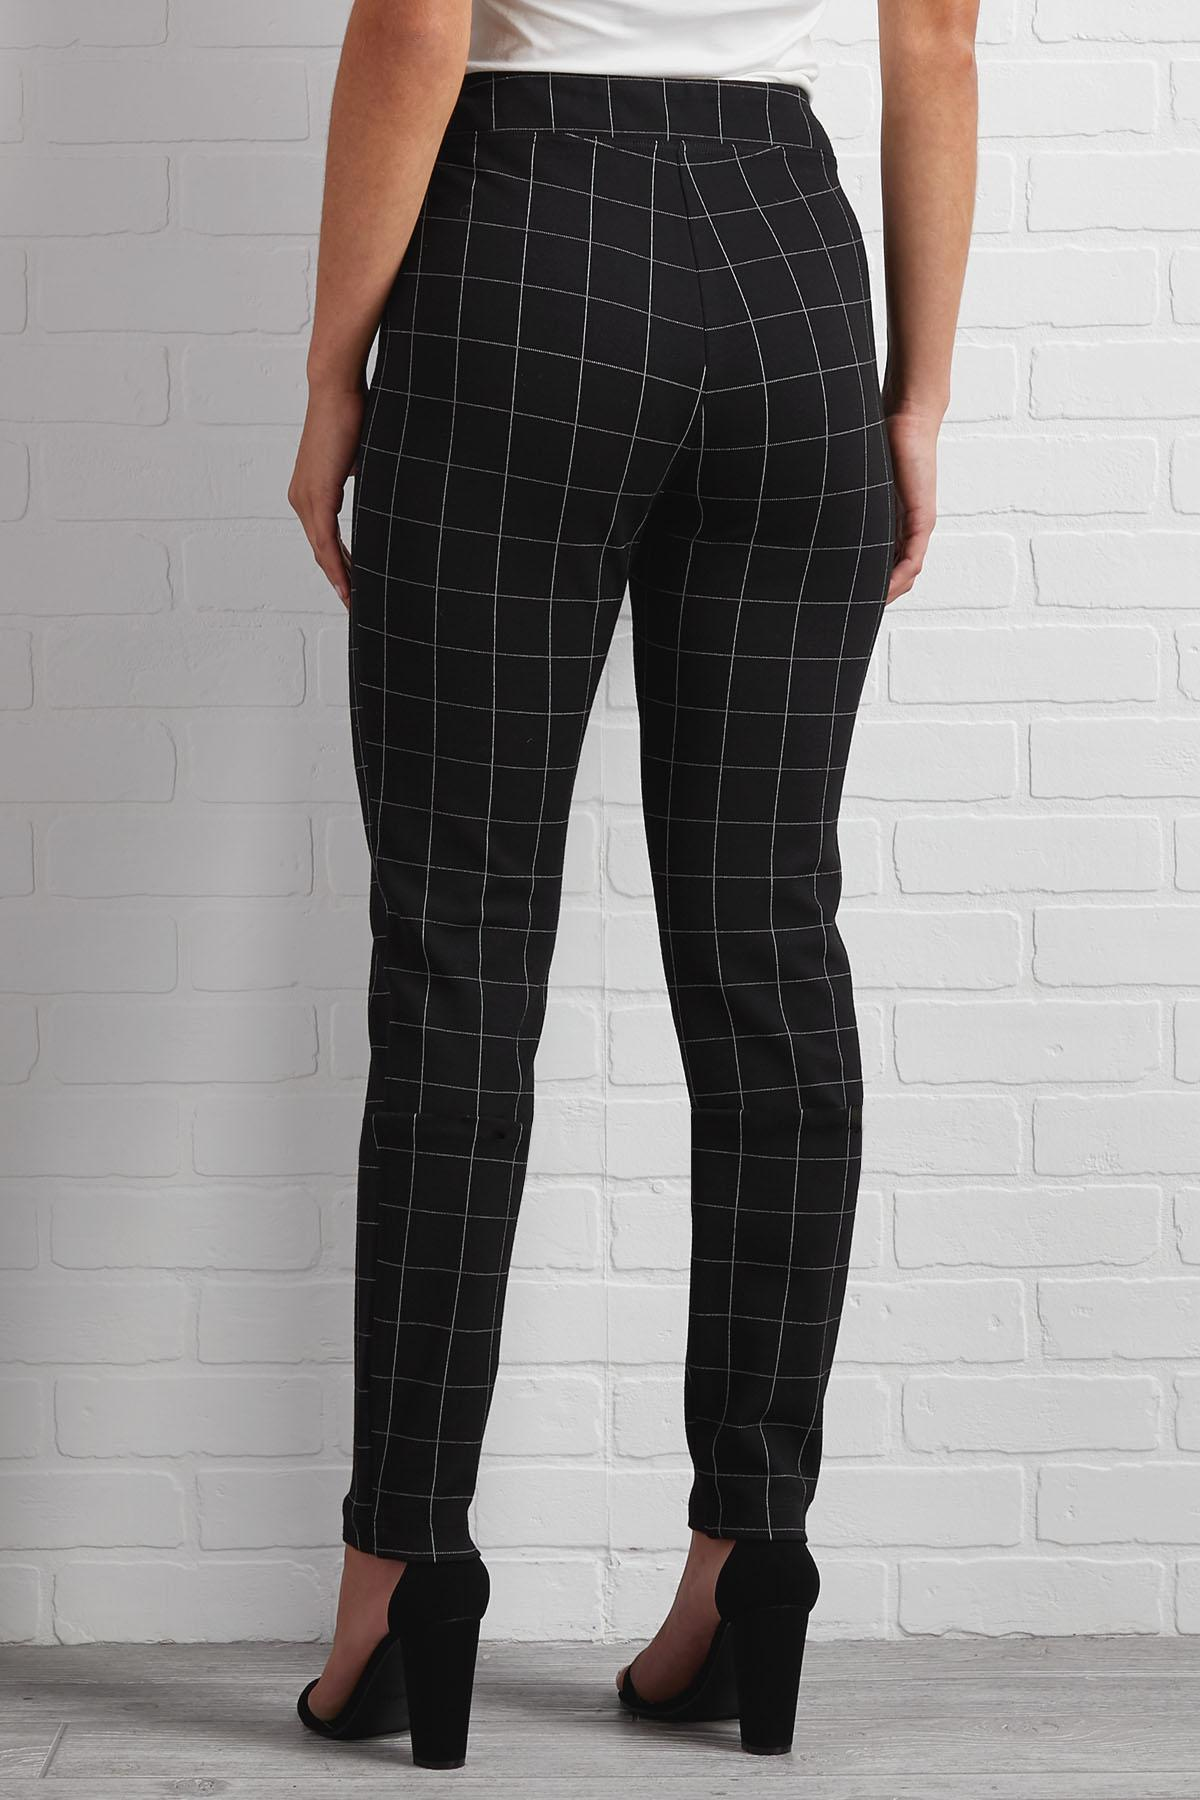 Beauty Is Windowpane Plaid Leggings